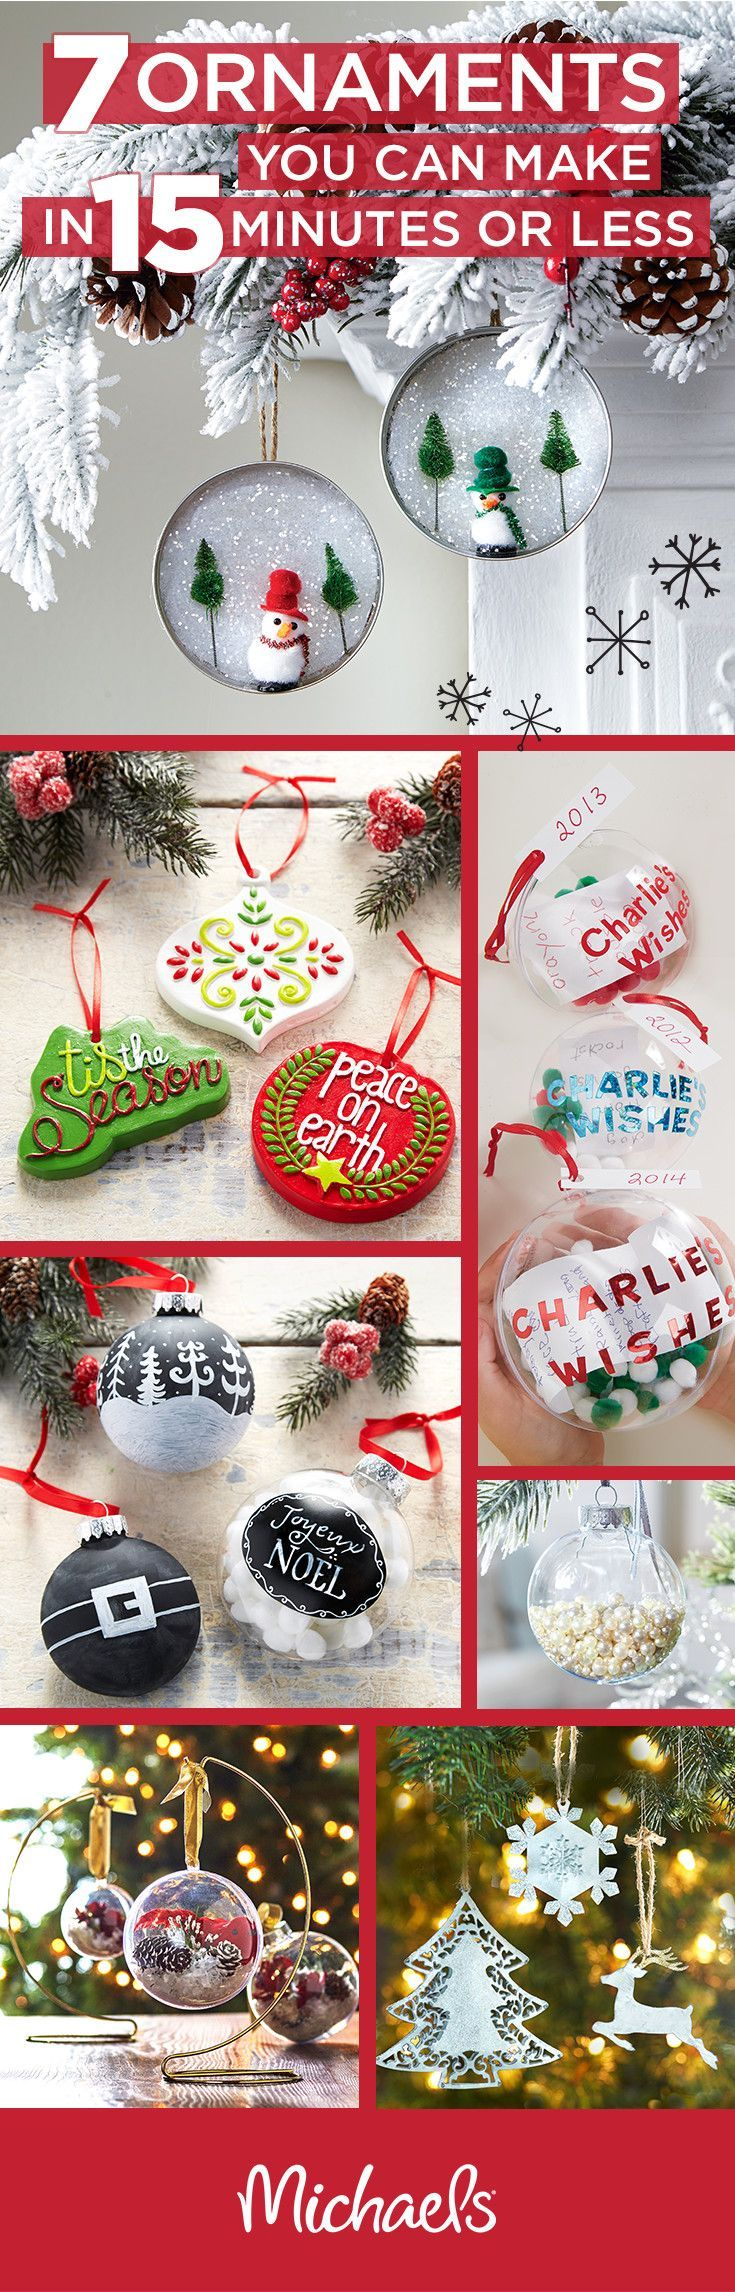 Handcrafted Ornaments Are A Great Way To Add A Special Touch To Your Tree,  But